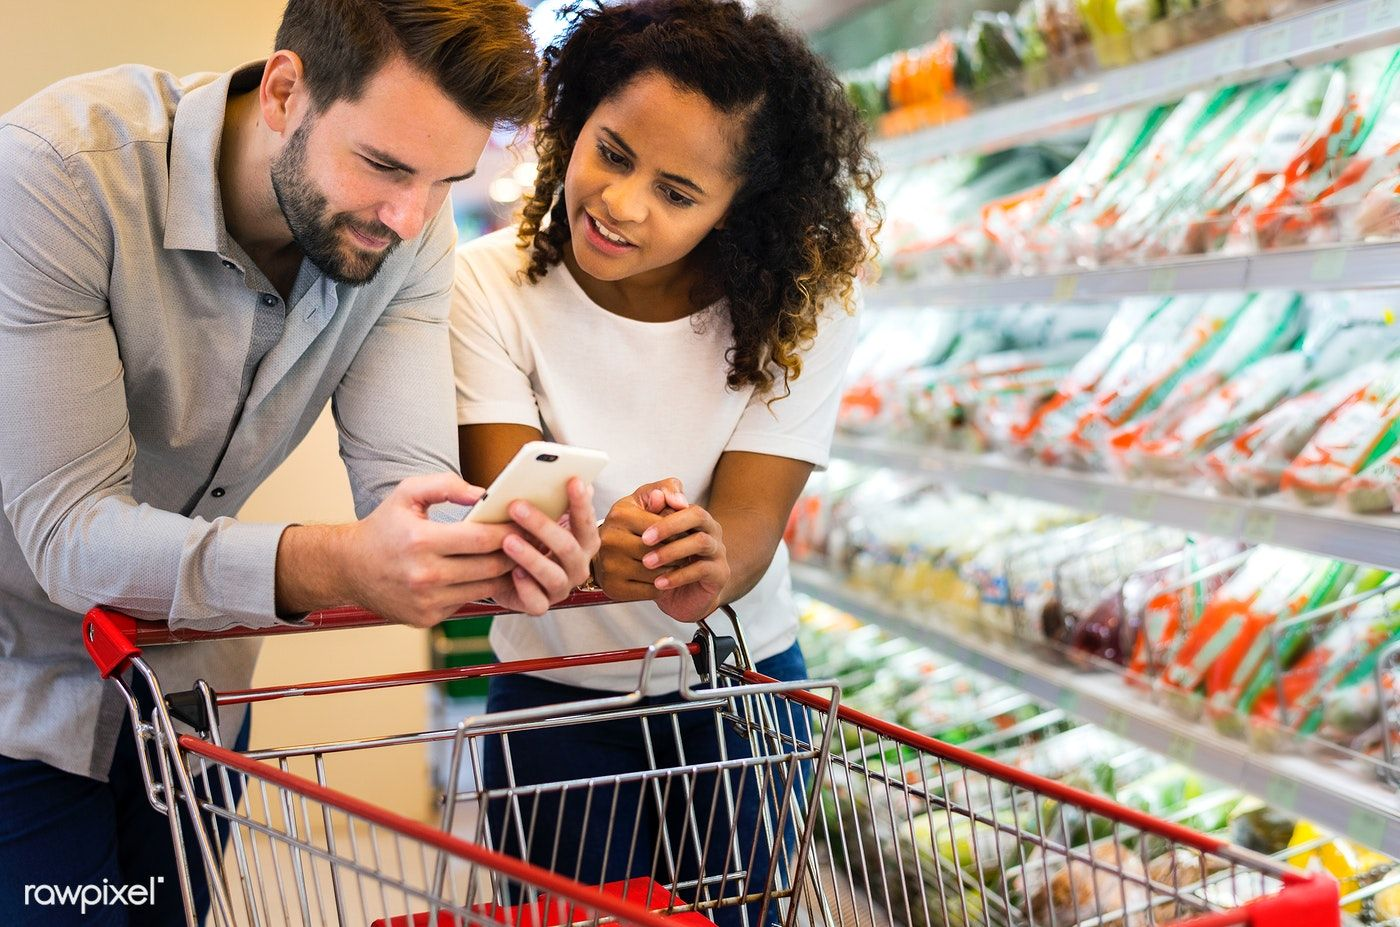 Download premium image of Couple shopping together at a supermarket 404466  | Supermarket, Couples images, Couples